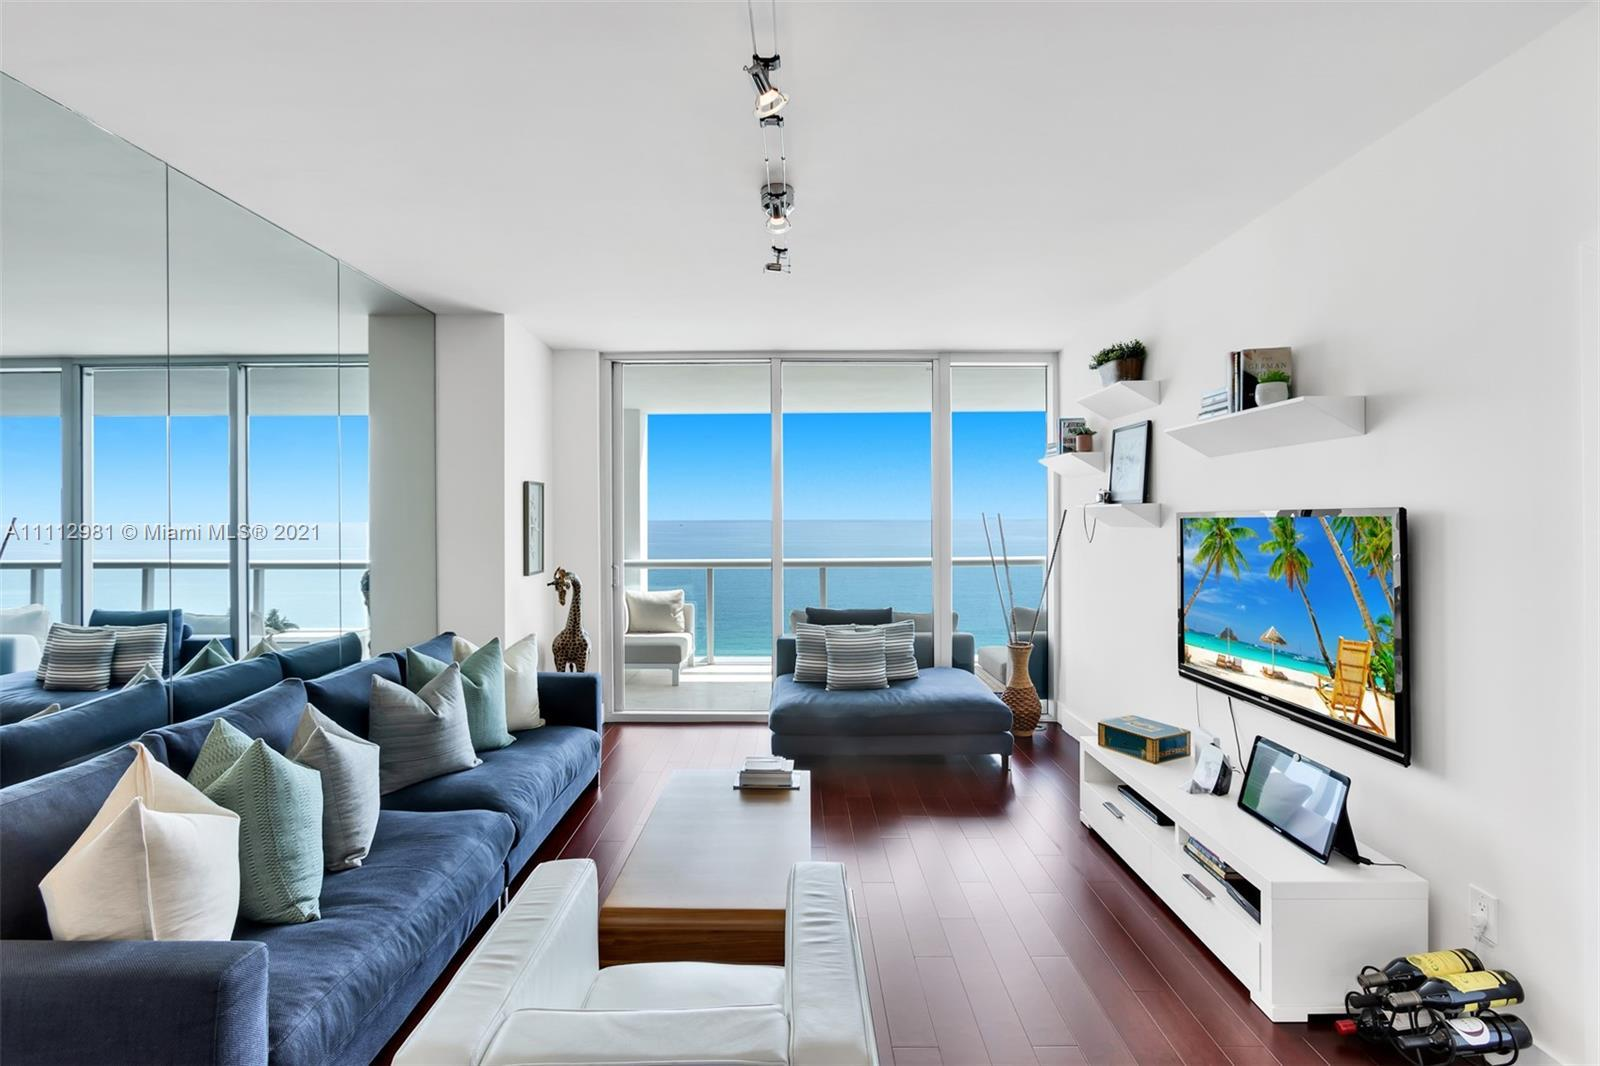 DIRECT OCEAN views from every room on this exquisite 2bd/2ba + a large direct ocean balcony on a hig